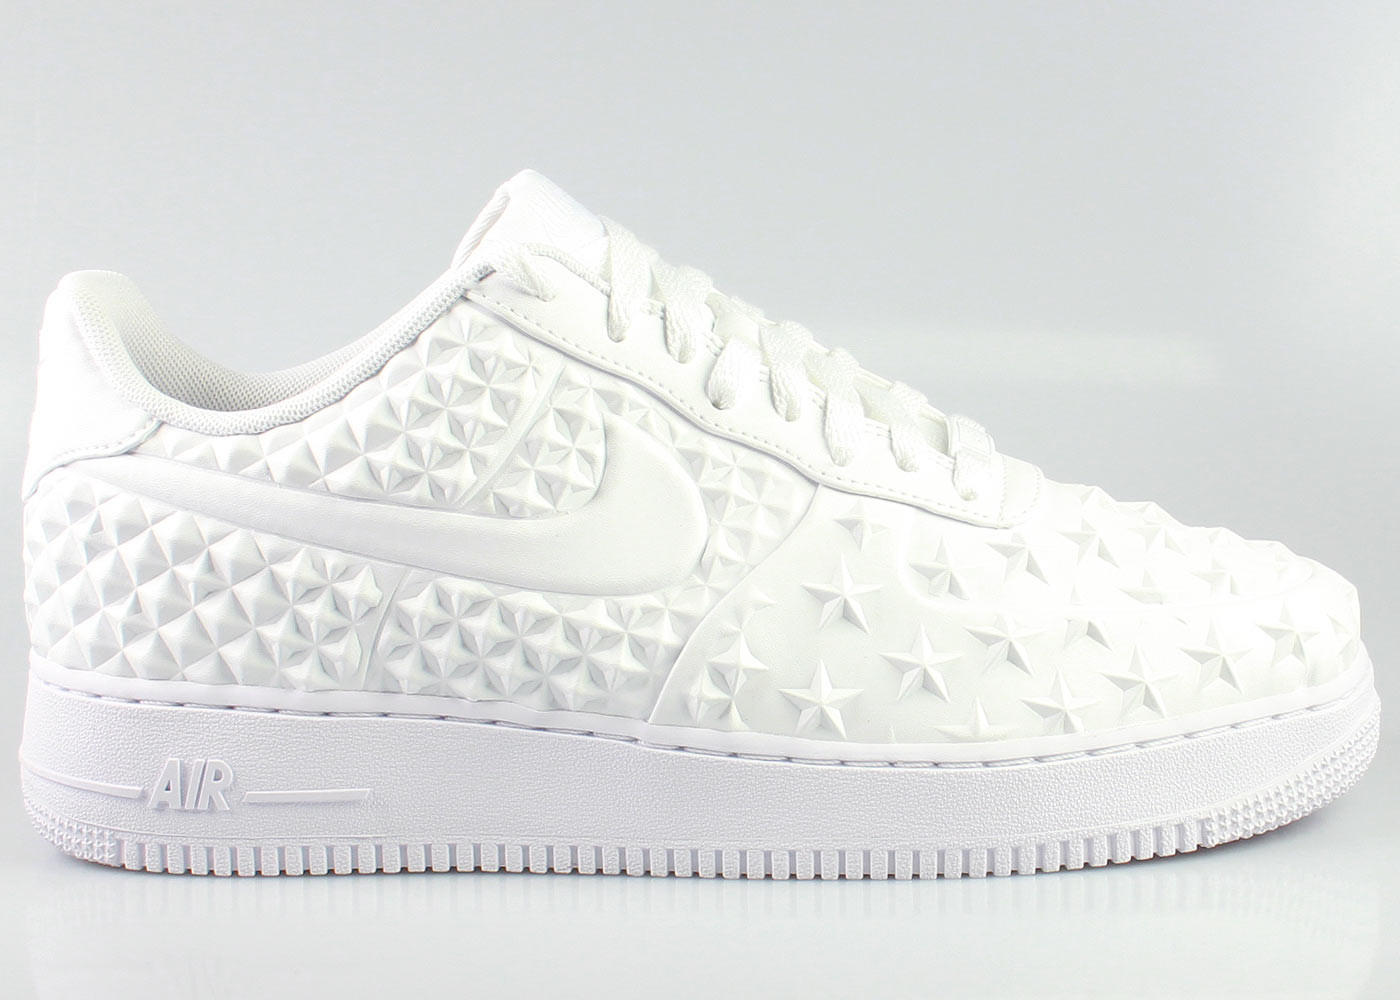 Nike Men s Air Force 1 Low LV8 VT Independence Day Pack - White 7a9c91740c5d